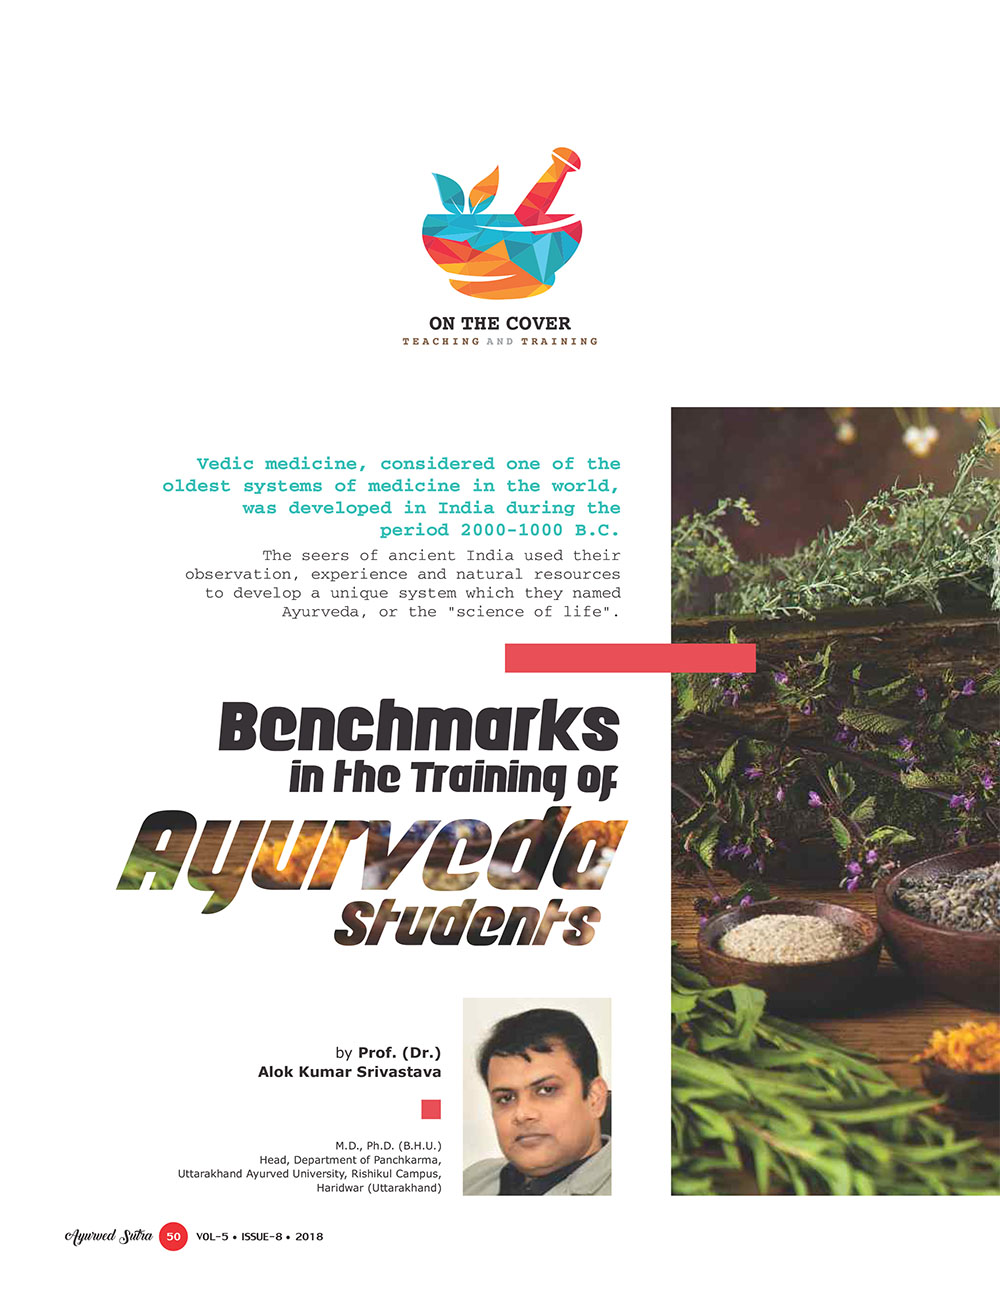 Ayurvedsutra Vol 05 issue 08 52 - Benchmarks in the Training  of Ayurveda Students